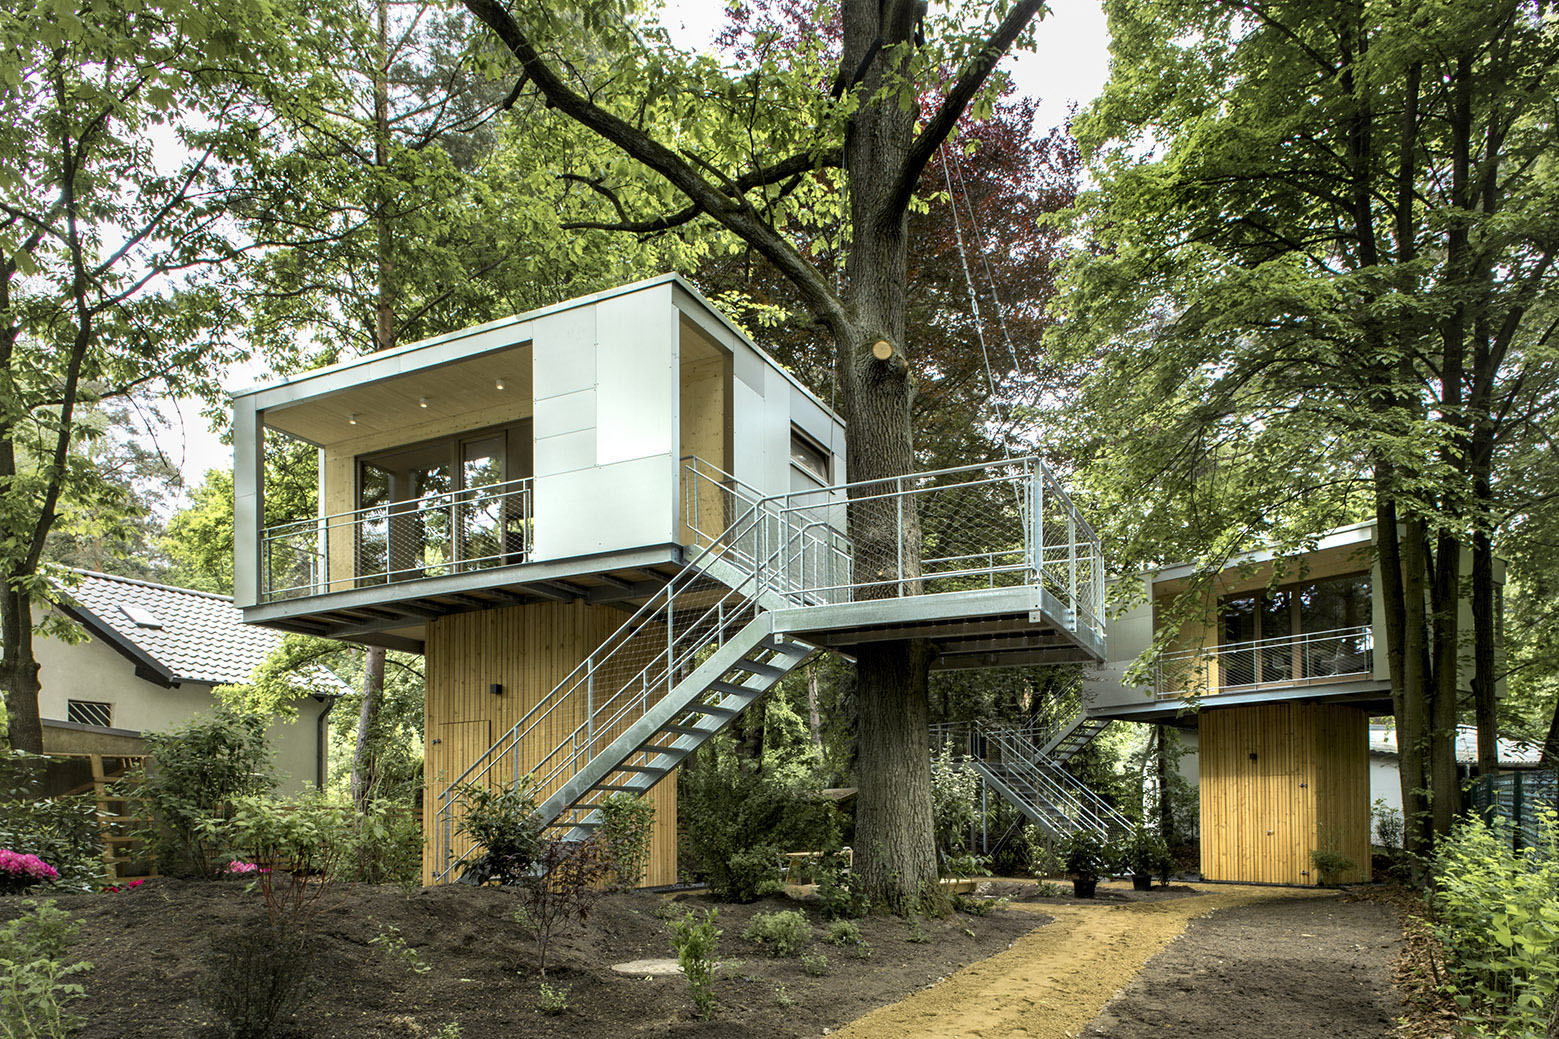 tiny treehouse urban oasis in berlin idesignarch. Black Bedroom Furniture Sets. Home Design Ideas